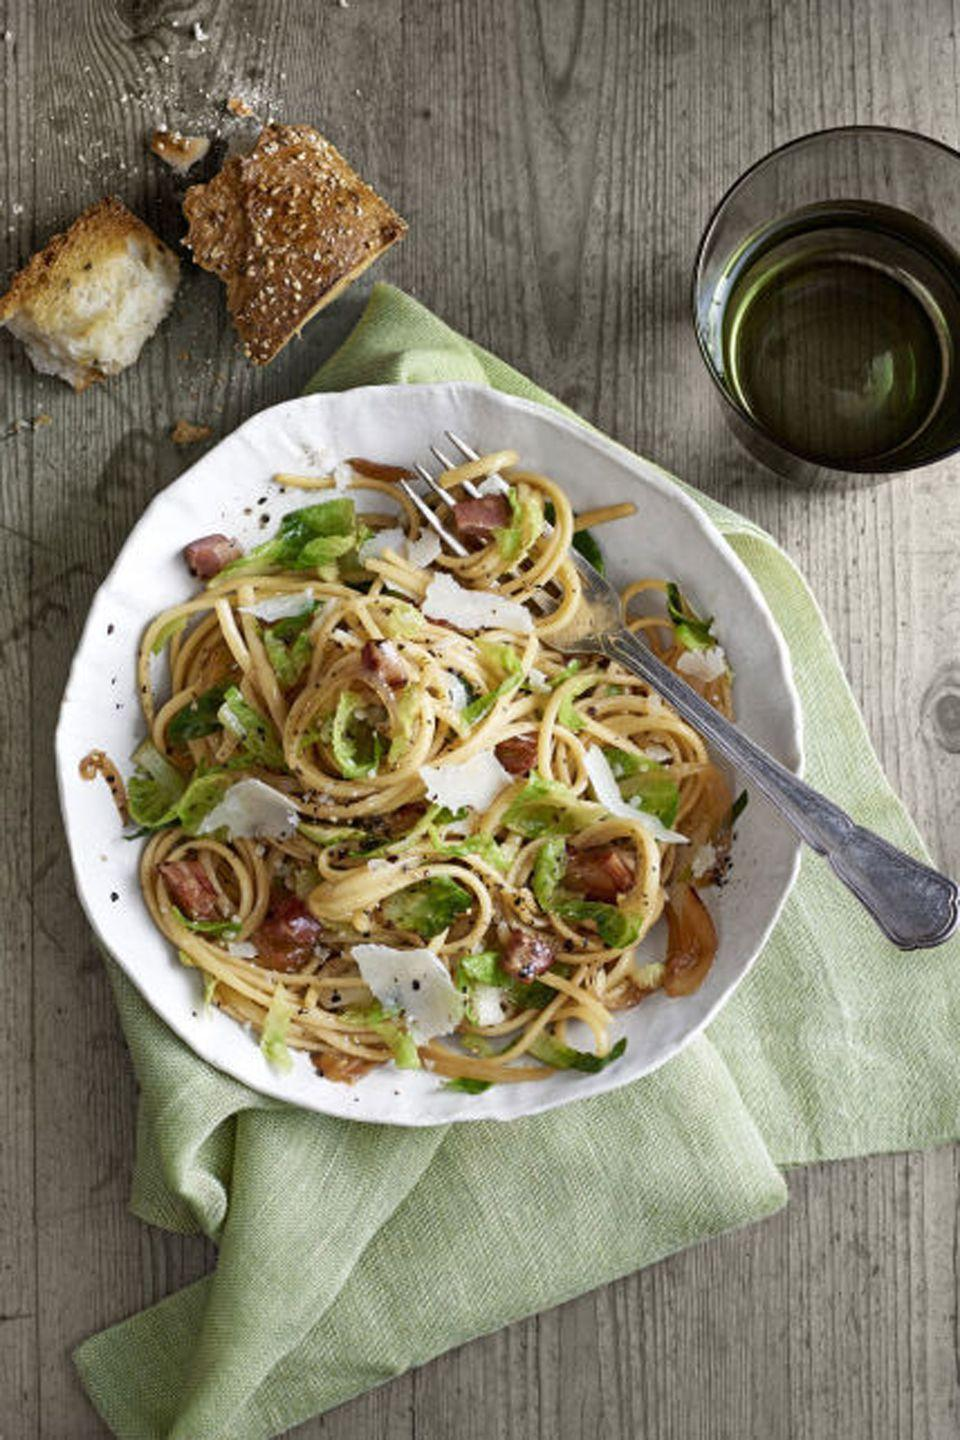 "<p>Crispy pancetta and caramelized onions give this simple dish plenty of flavor.</p><p><a href=""https://www.countryliving.com/food-drinks/recipes/a6337/pancetta-brussels-sprouts-linguini-recipe-clx0215/"" rel=""nofollow noopener"" target=""_blank"" data-ylk=""slk:Get the recipe."" class=""link rapid-noclick-resp""><strong>Get the recipe.</strong></a></p>"